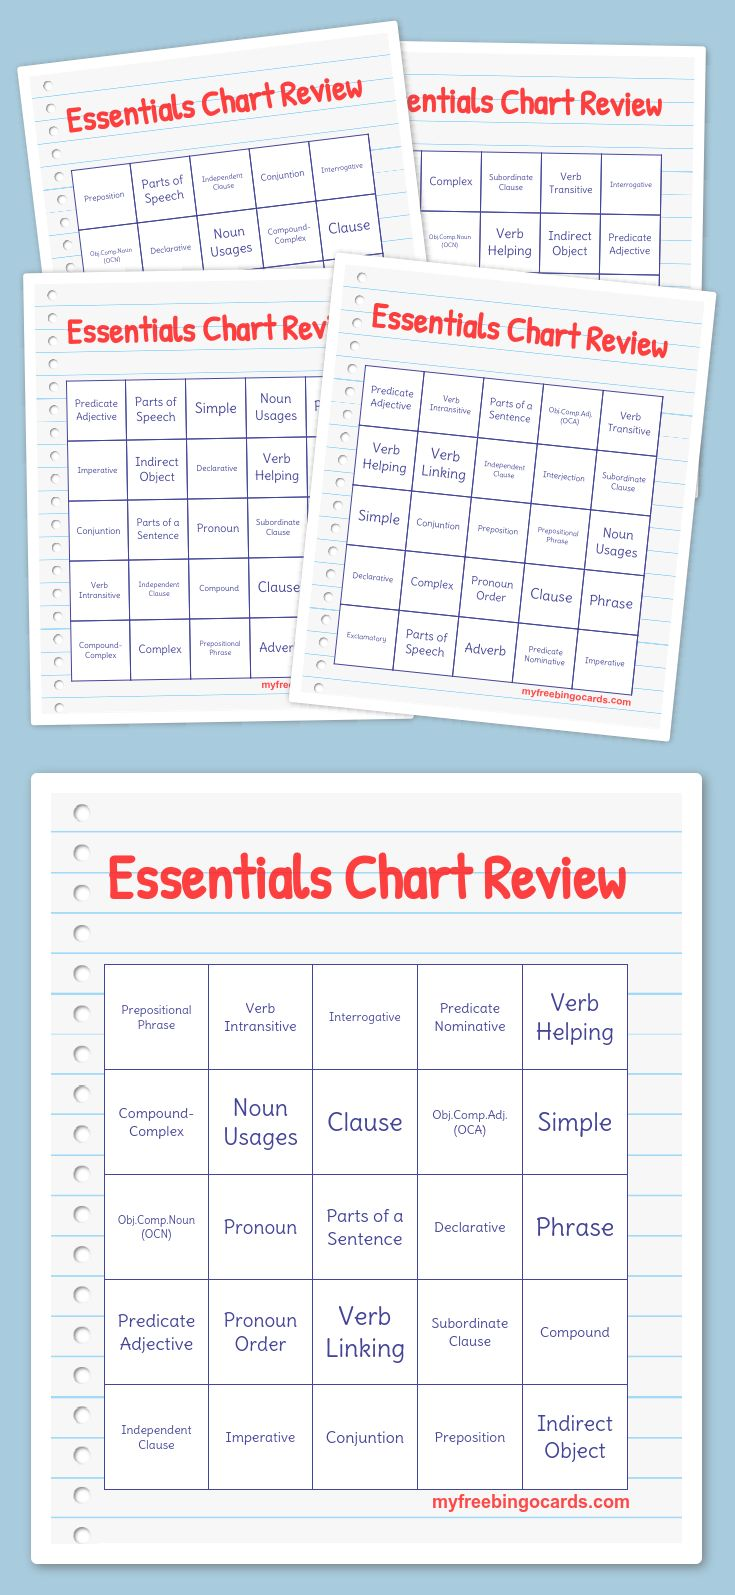 worksheet Number Line Generator worksheet number line generator gabrieltoz worksheets for 17 best ideas about bingo on pinterest writing essentials chart review